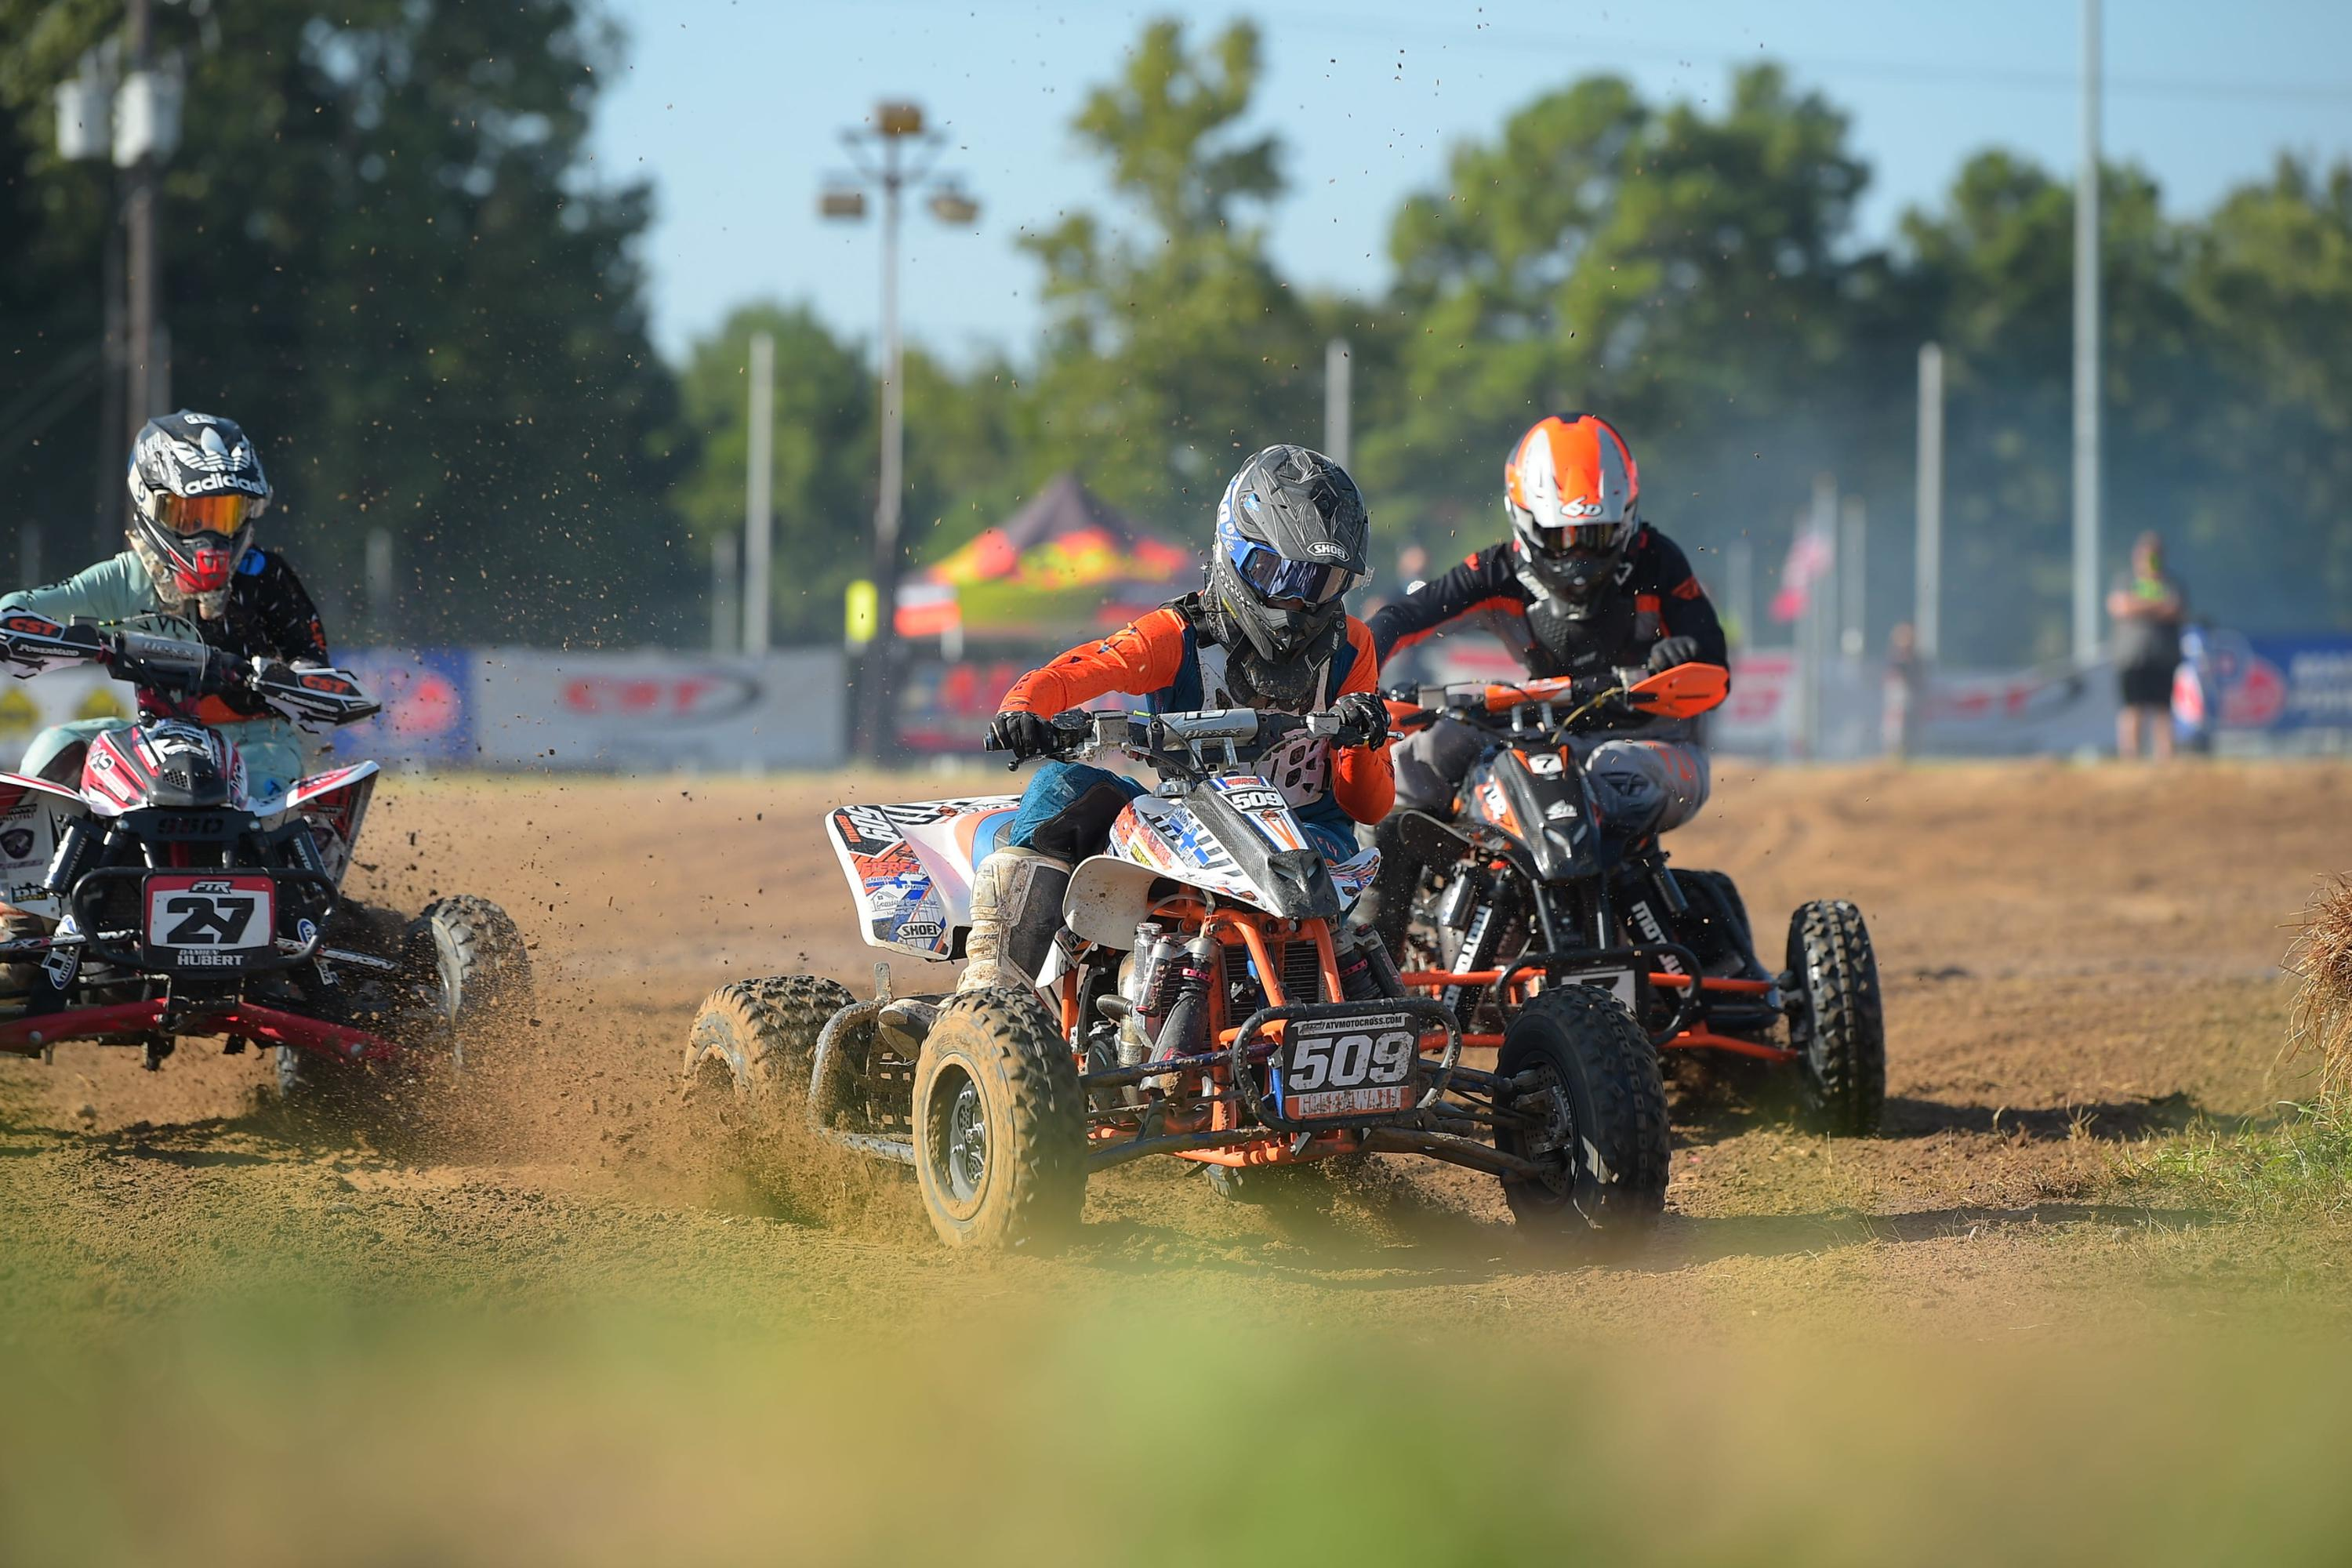 Competition Bulletin 2021-1: Tentative 2021 ATVMX Supplemental Rules, National Classes and Production Stock Chart Available for Public Comment